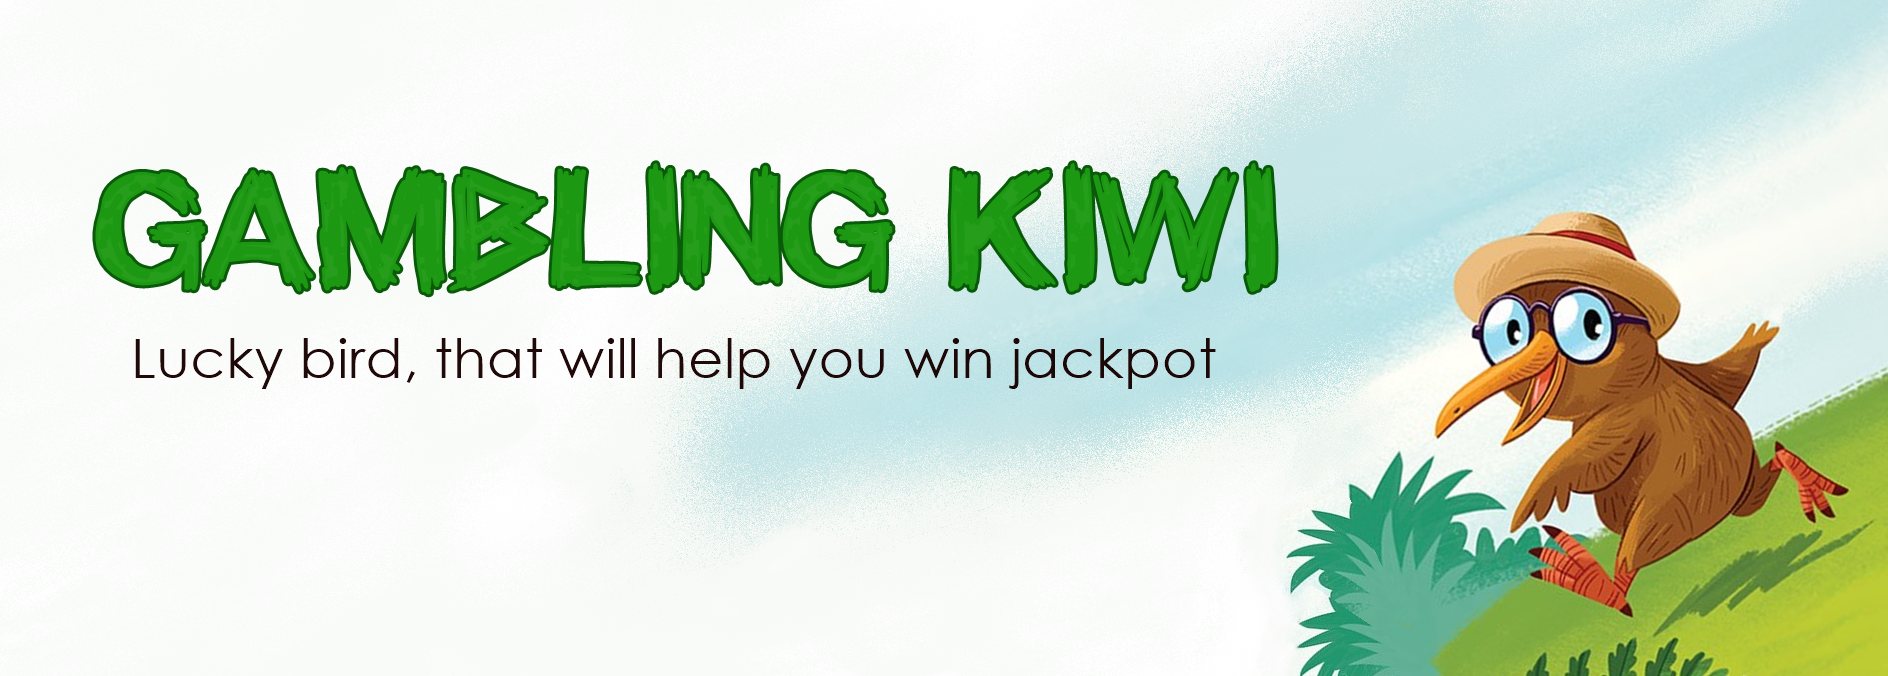 Gambling Kiwi – Lucky bird, that will help you win jackpot